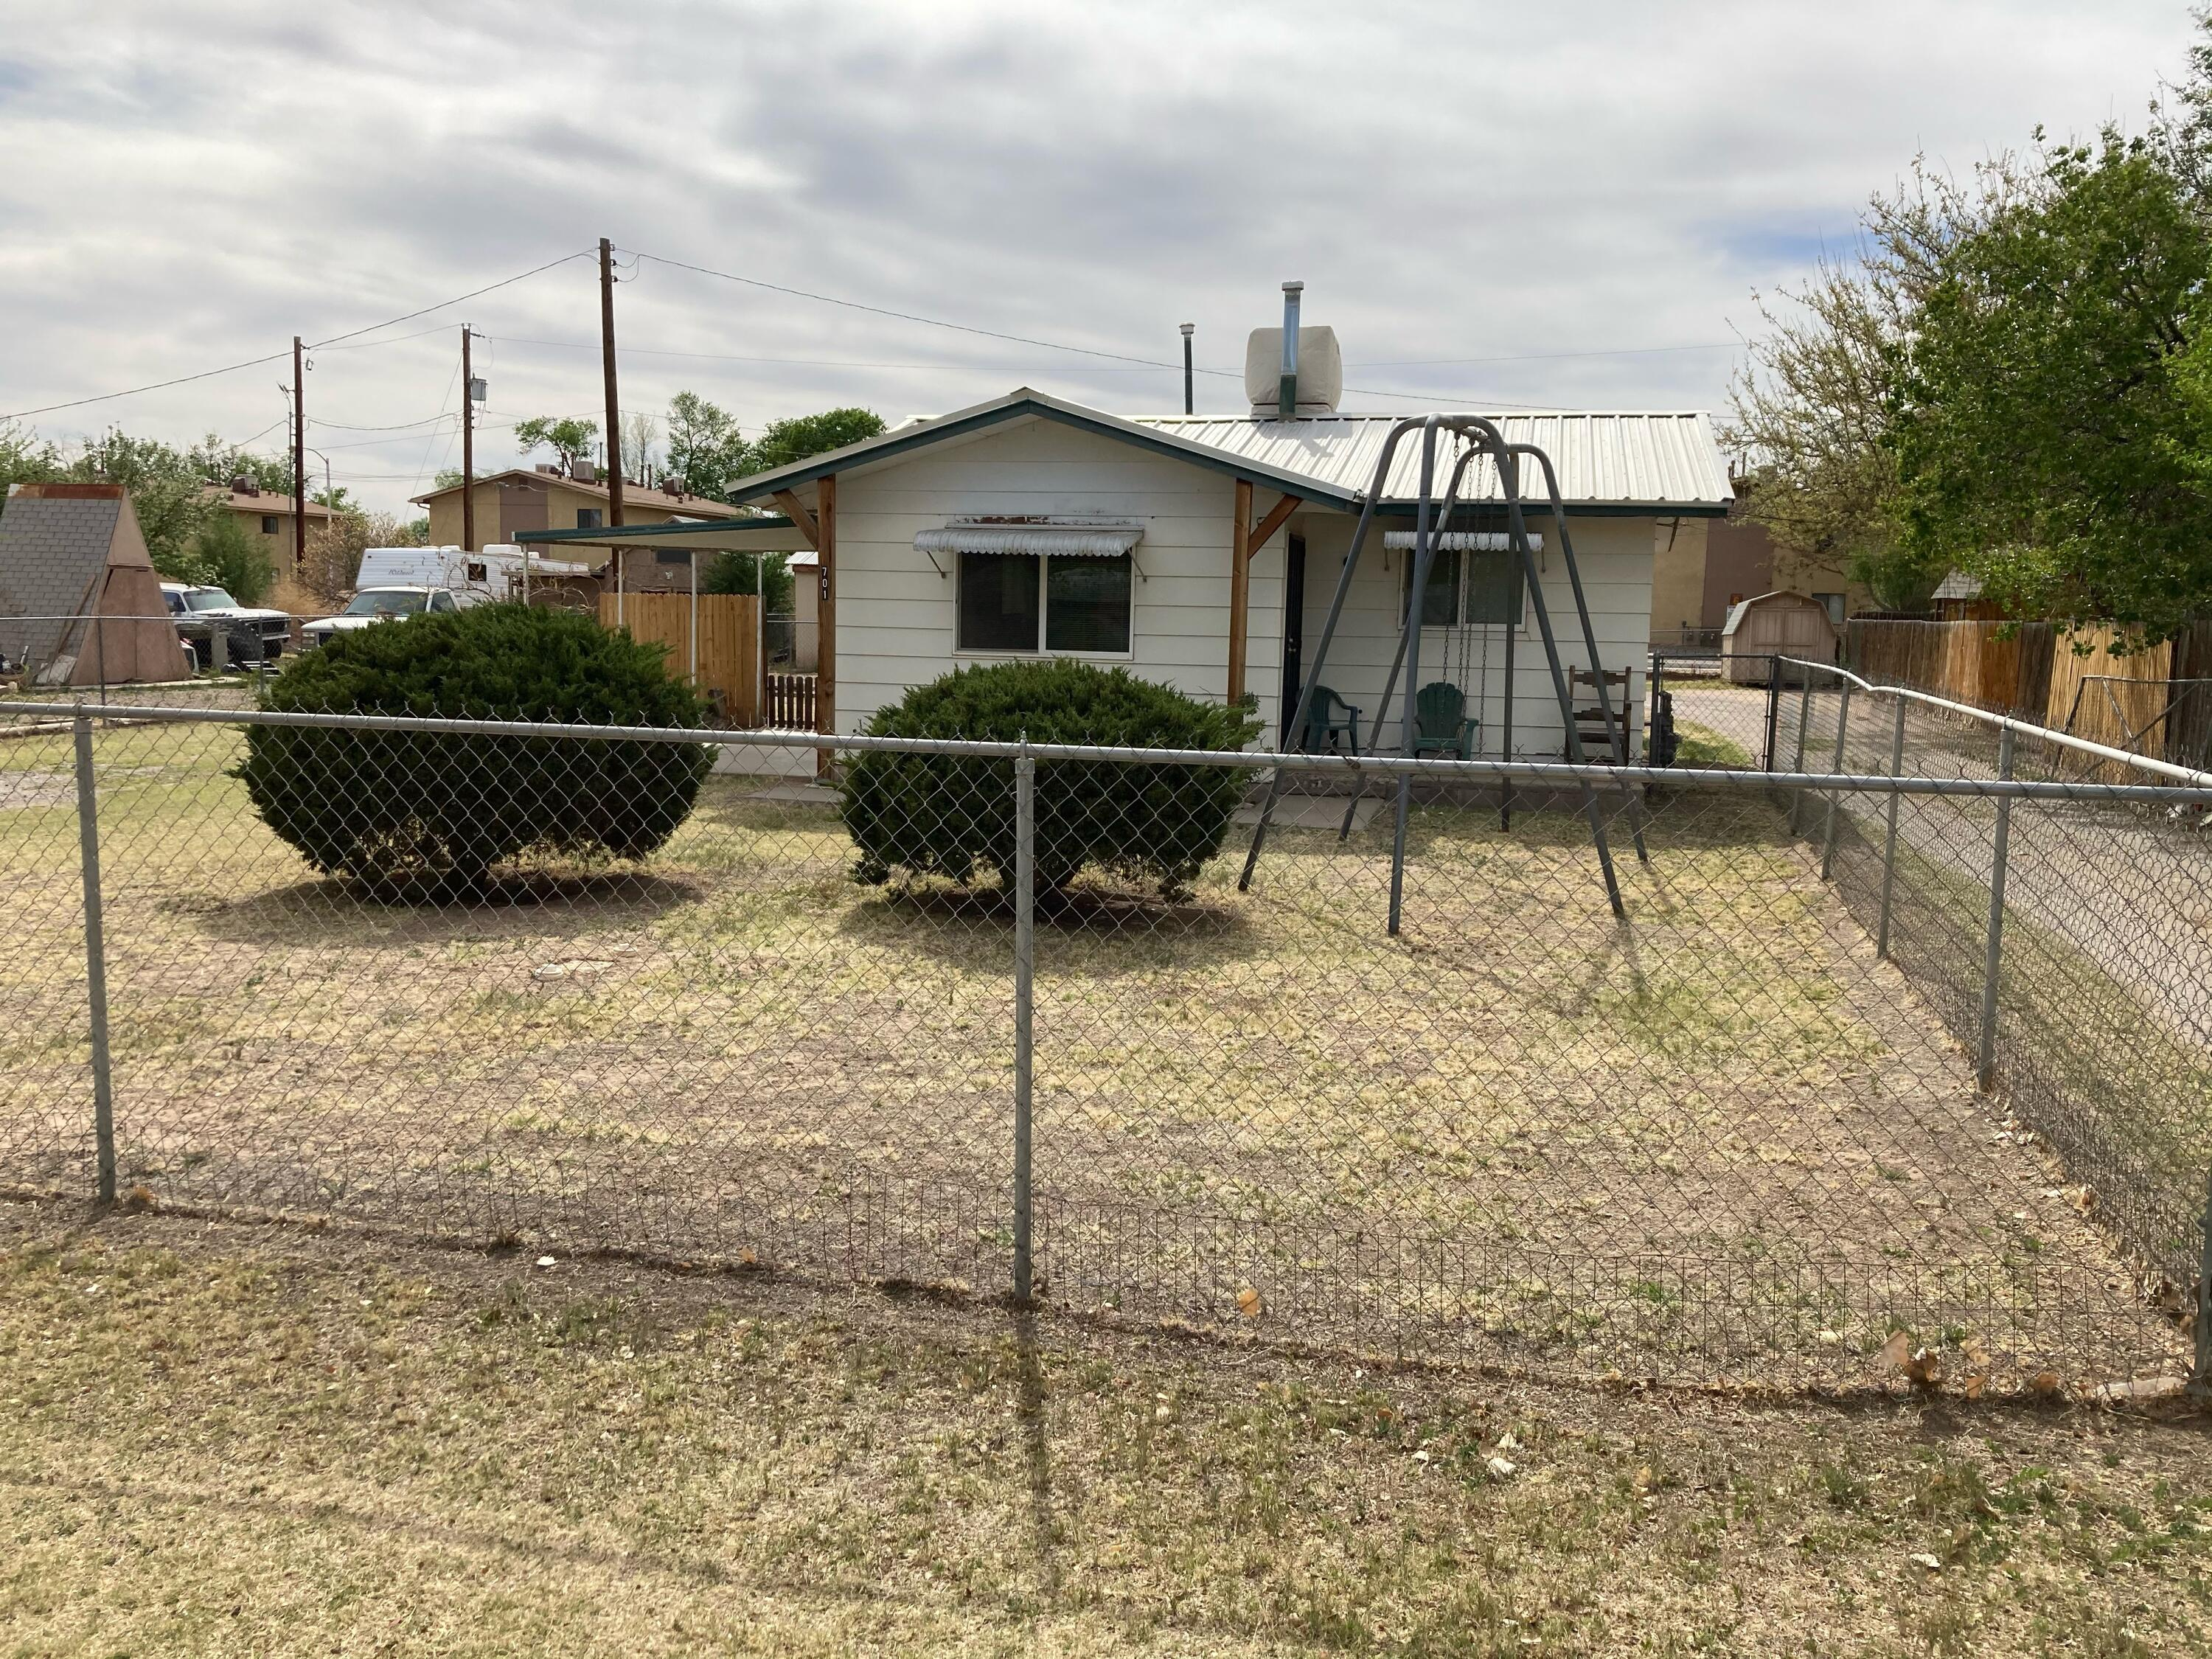 Great investment property in the heart of Los Lunas.  Two houses on .29 acres.  Front house has 627 sq ft, 2 bedrooms & 1 full bath.  Back house has 608 sq ft, 1 bedroom & 1 full bath. Each unit has its own access.  Live in one unit and rent out the other!